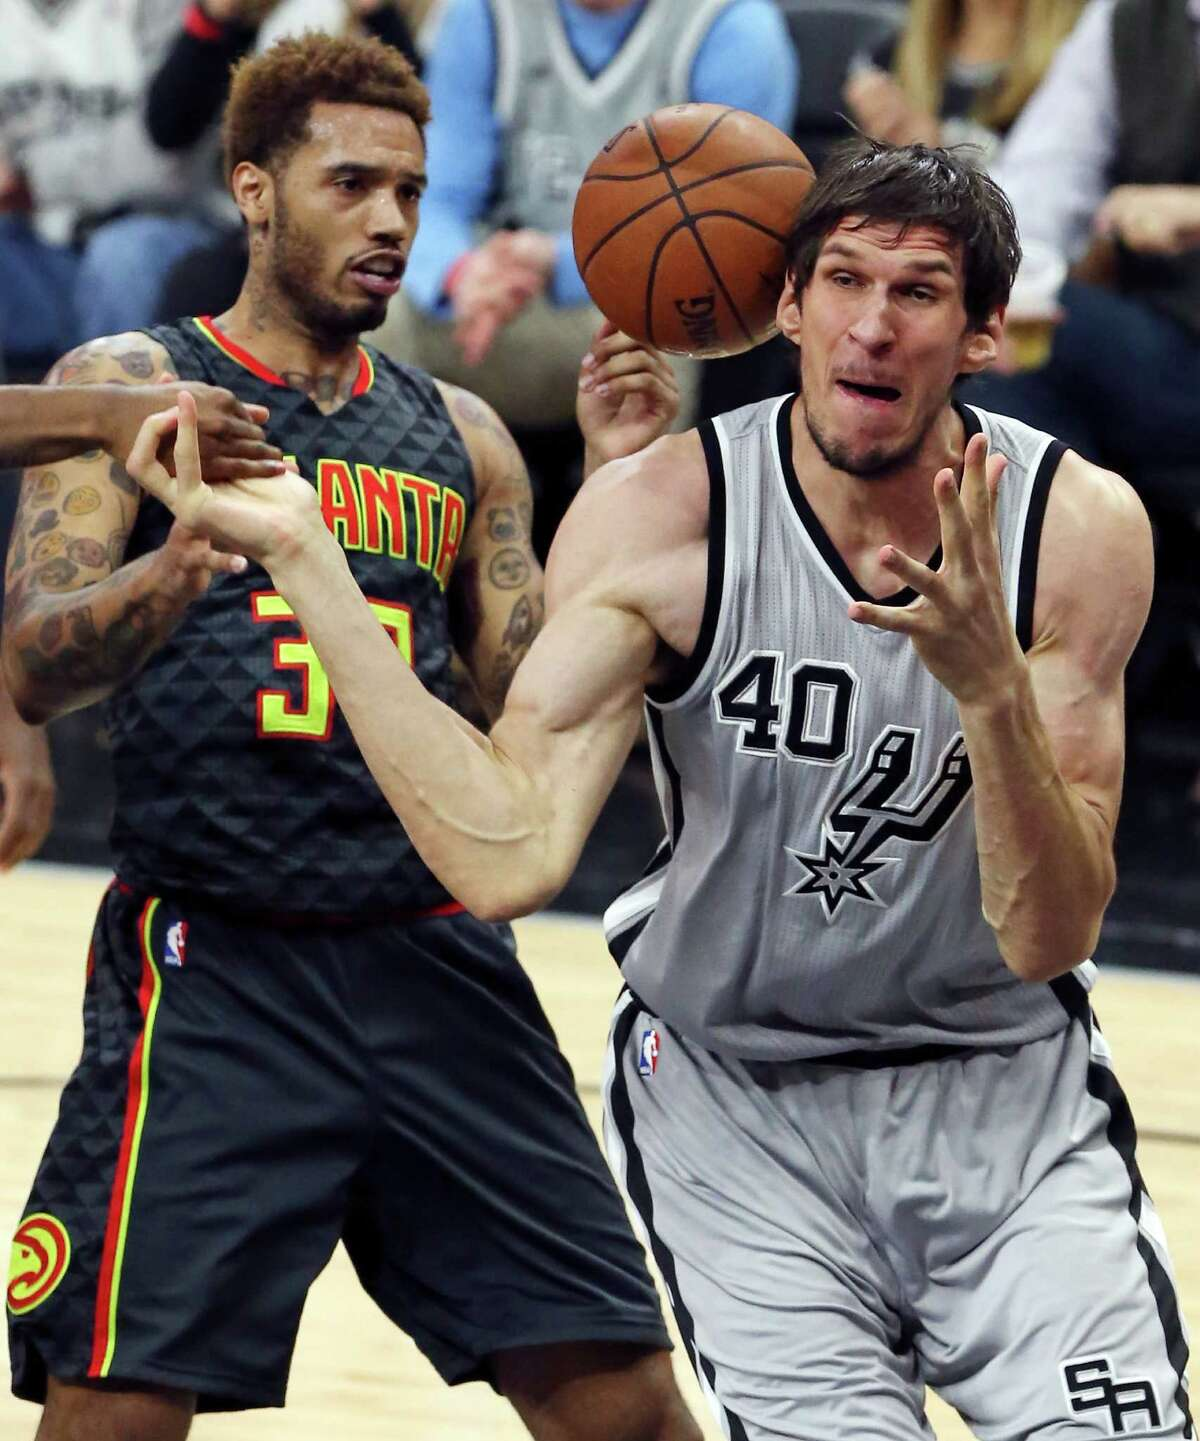 Atlanta Hawks' Mike Scott and San Antonio Spurs' Boban Marjanovic grab for a loose ball during second half action Saturday Nov. 28, 2015 at the AT&T Center. The Spurs won 108-88.